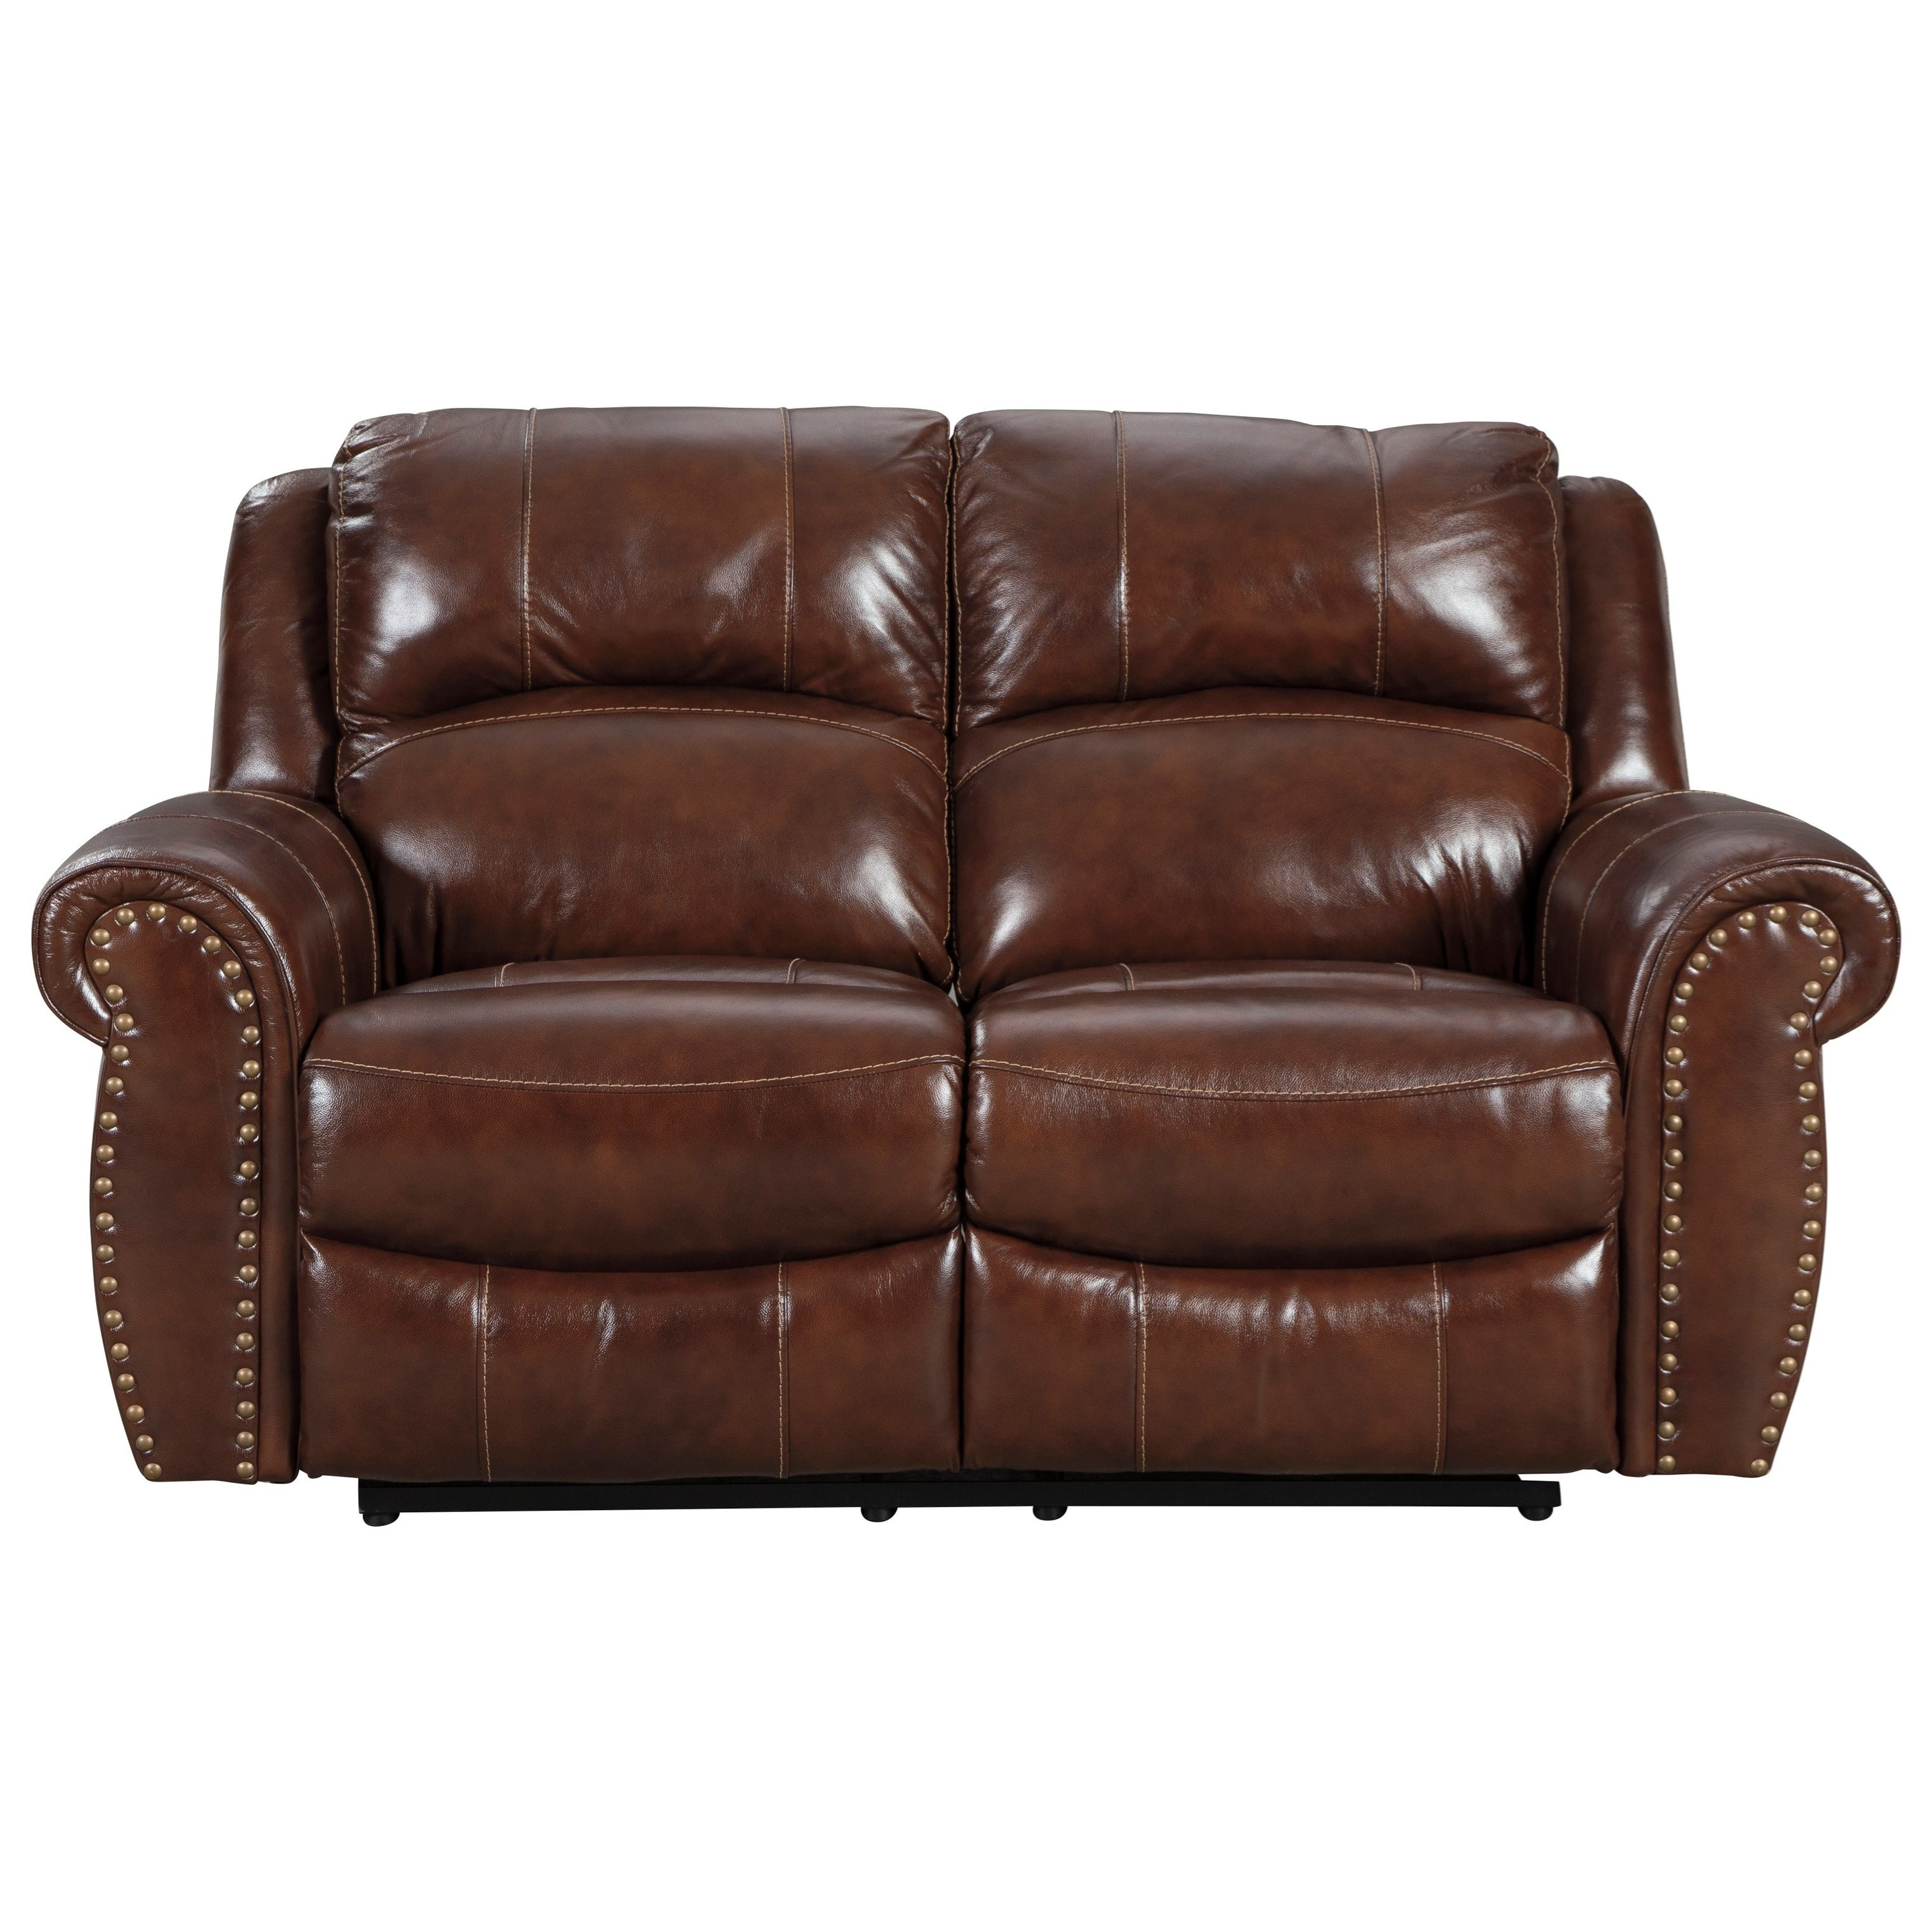 Bingen Reclining Loveseat by Signature Design by Ashley at Sparks HomeStore